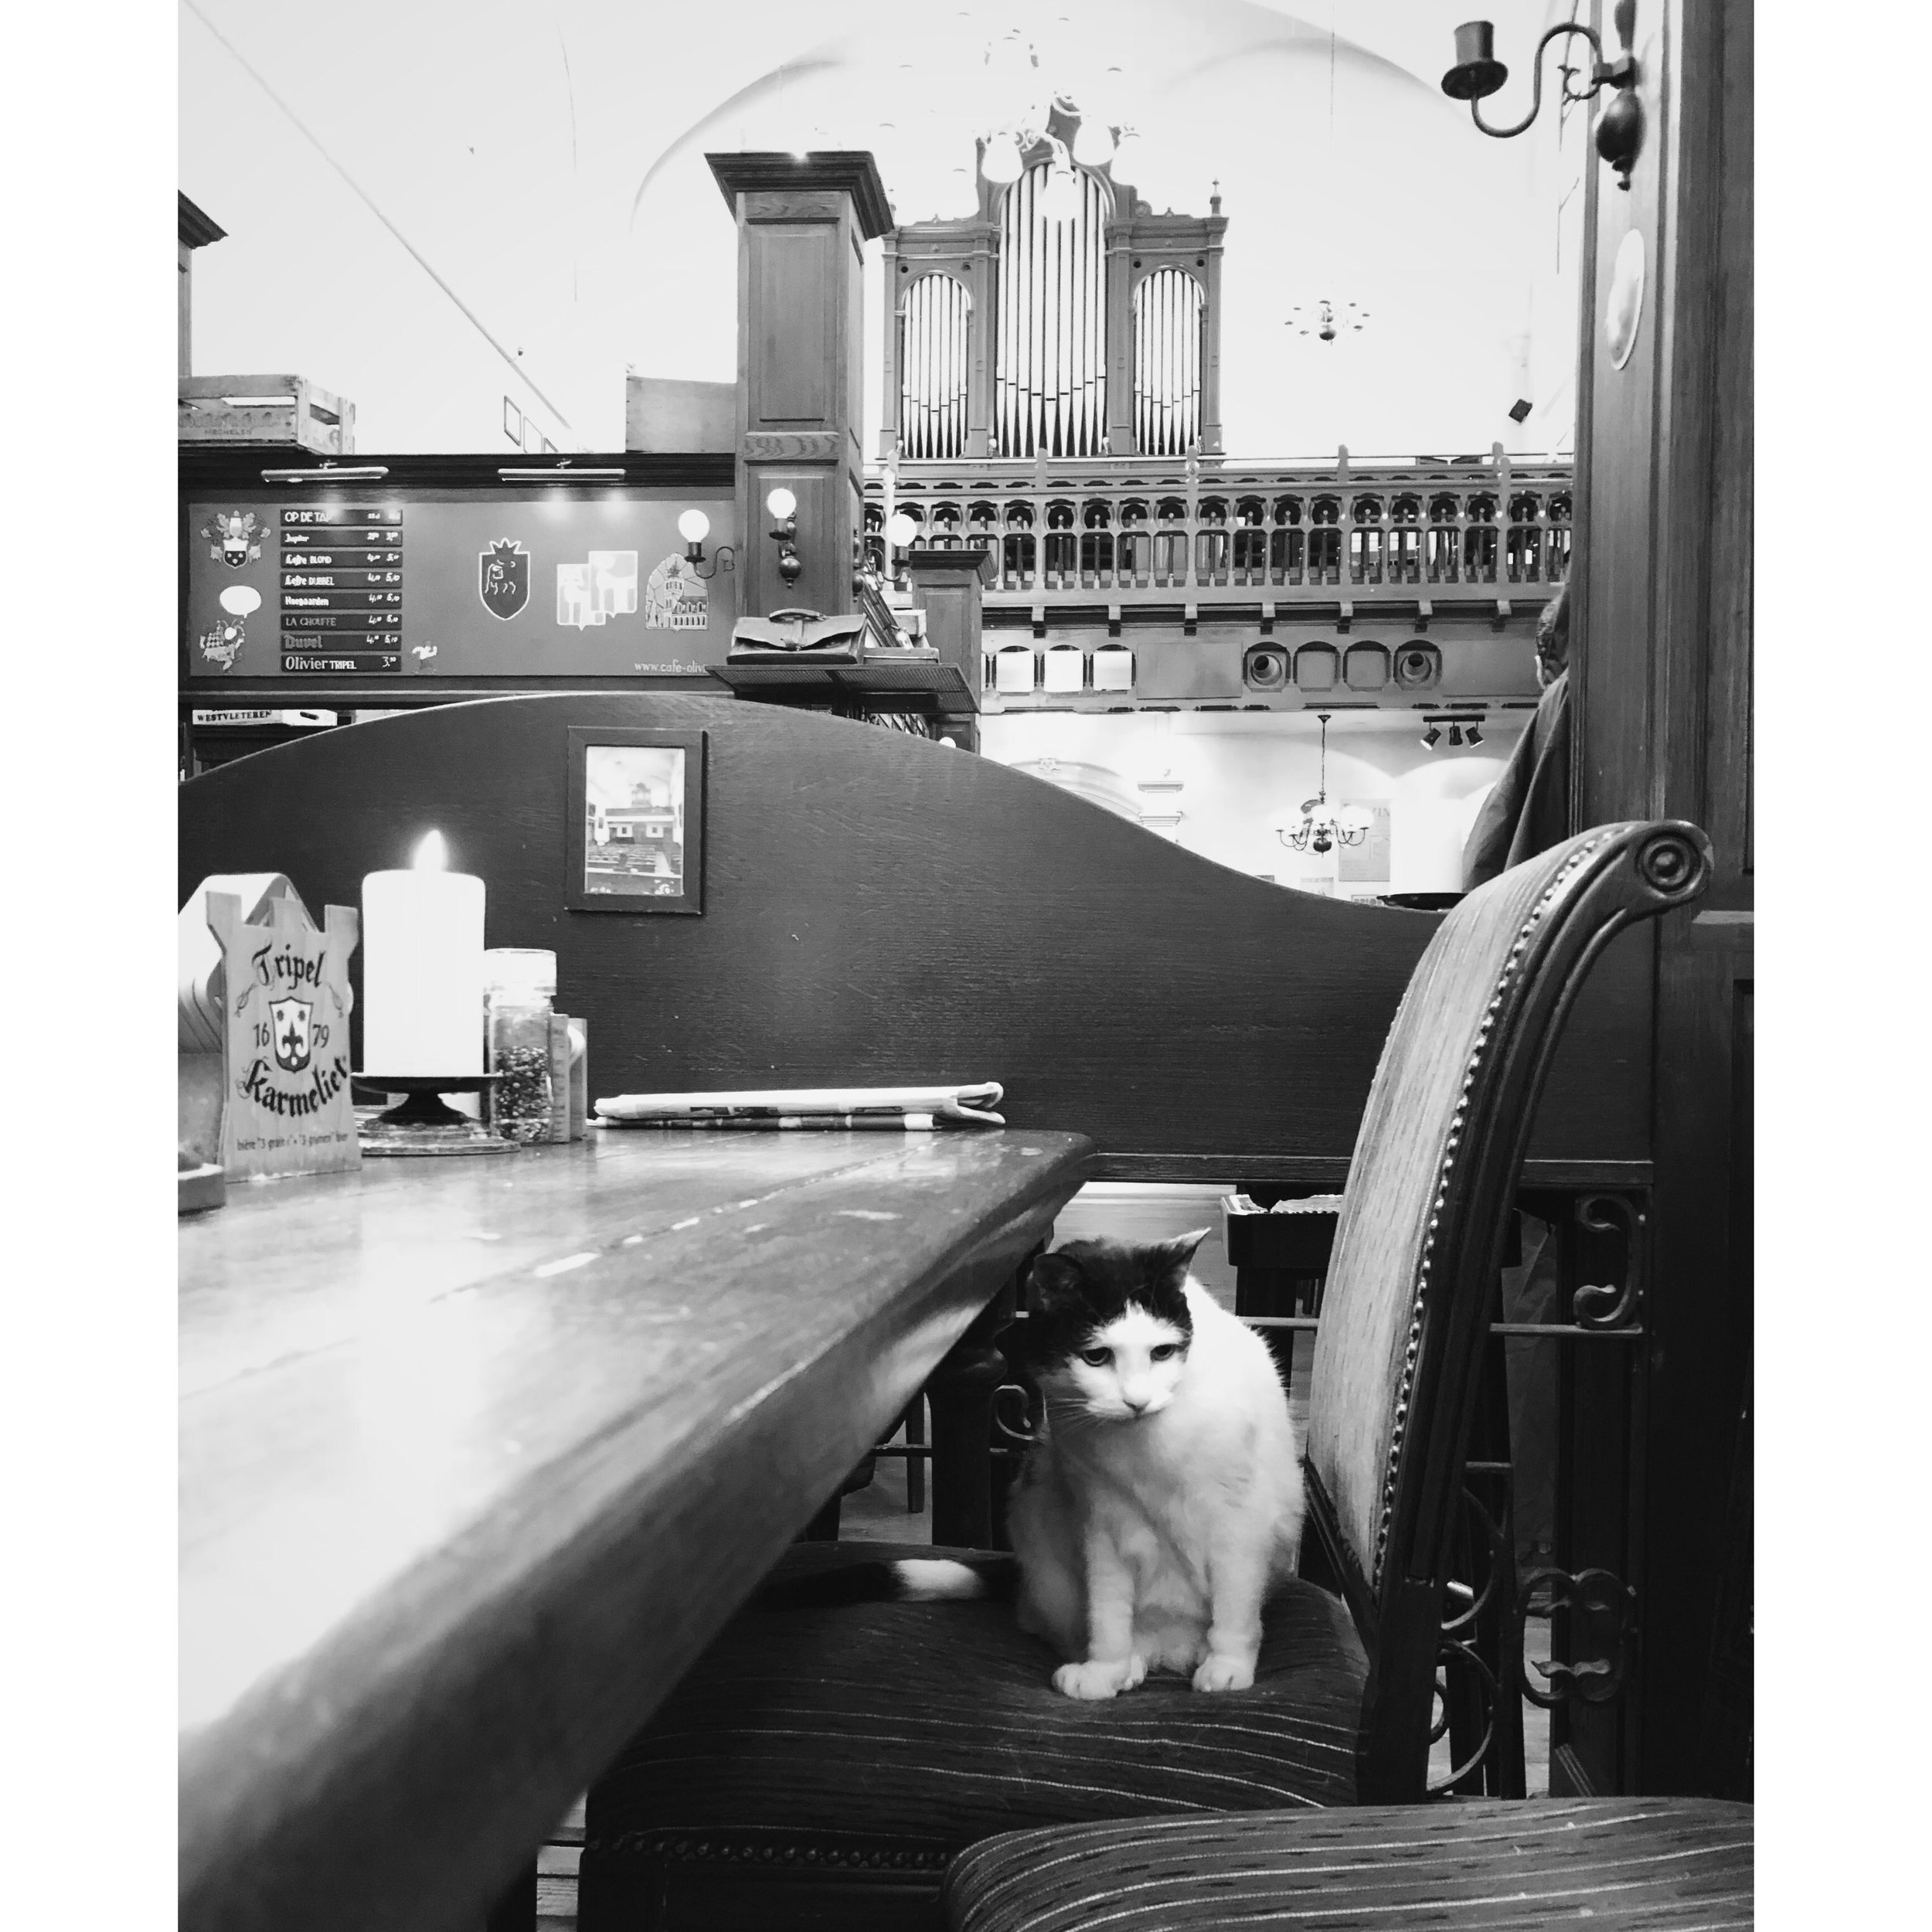 Bar cat at Belgisch Biercafé Olivier; Utrech, Netherlands.